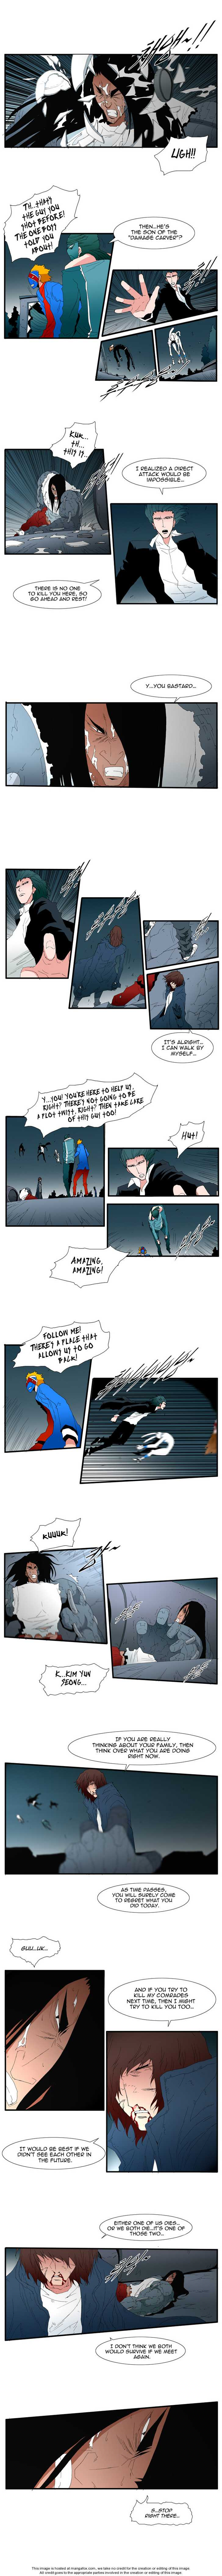 Trace 37 Page 2